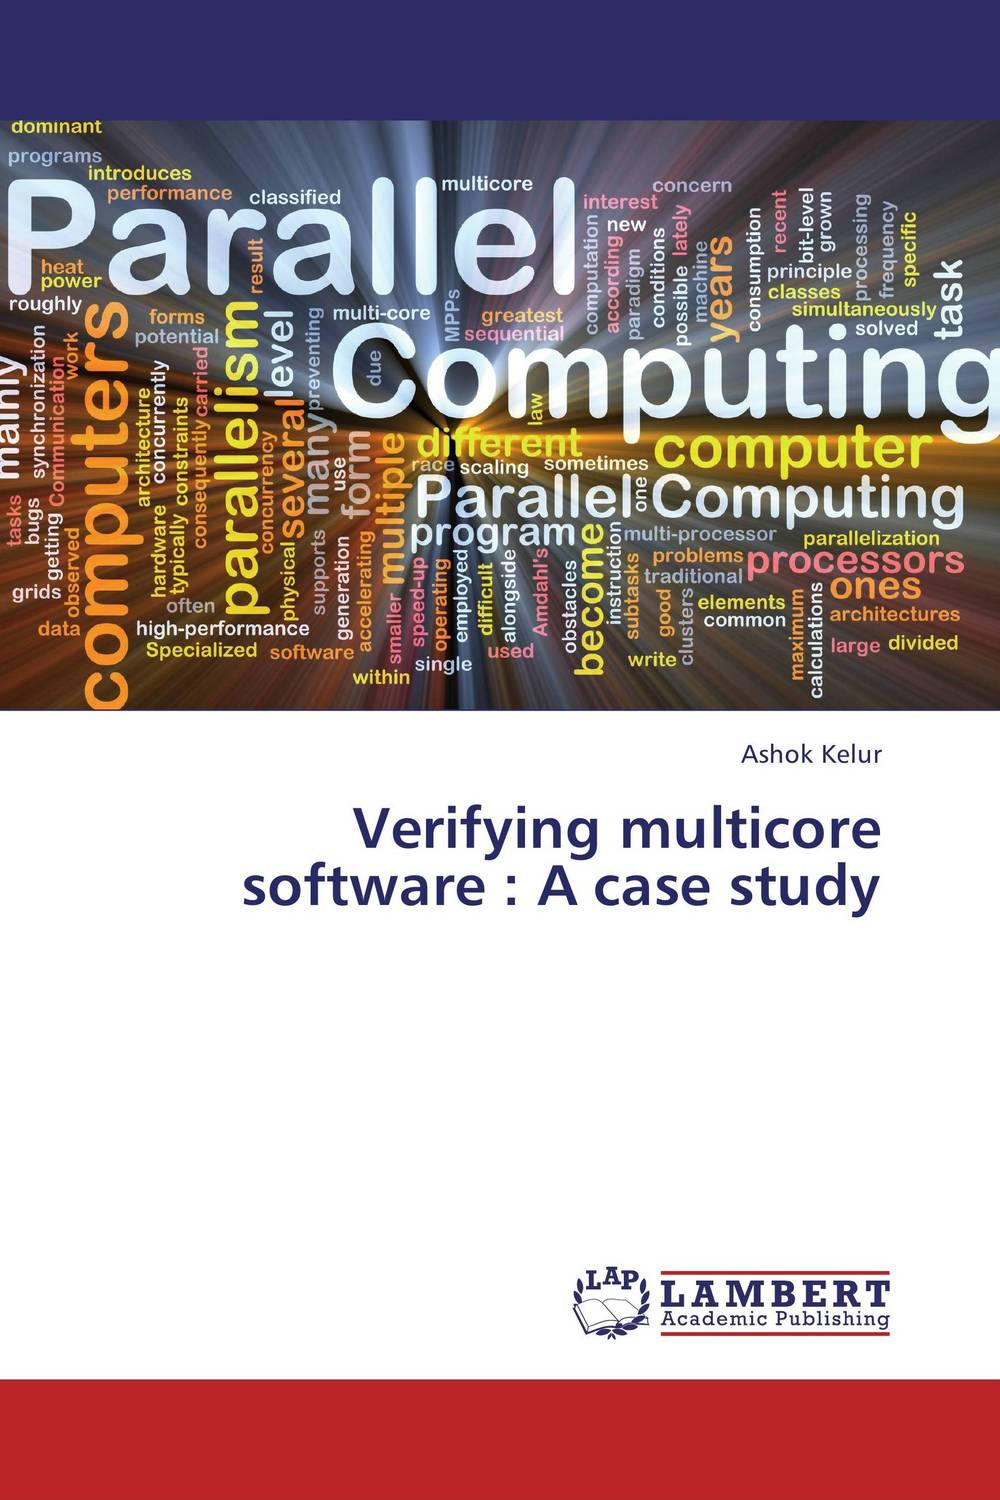 Verifying multicore software : A case study